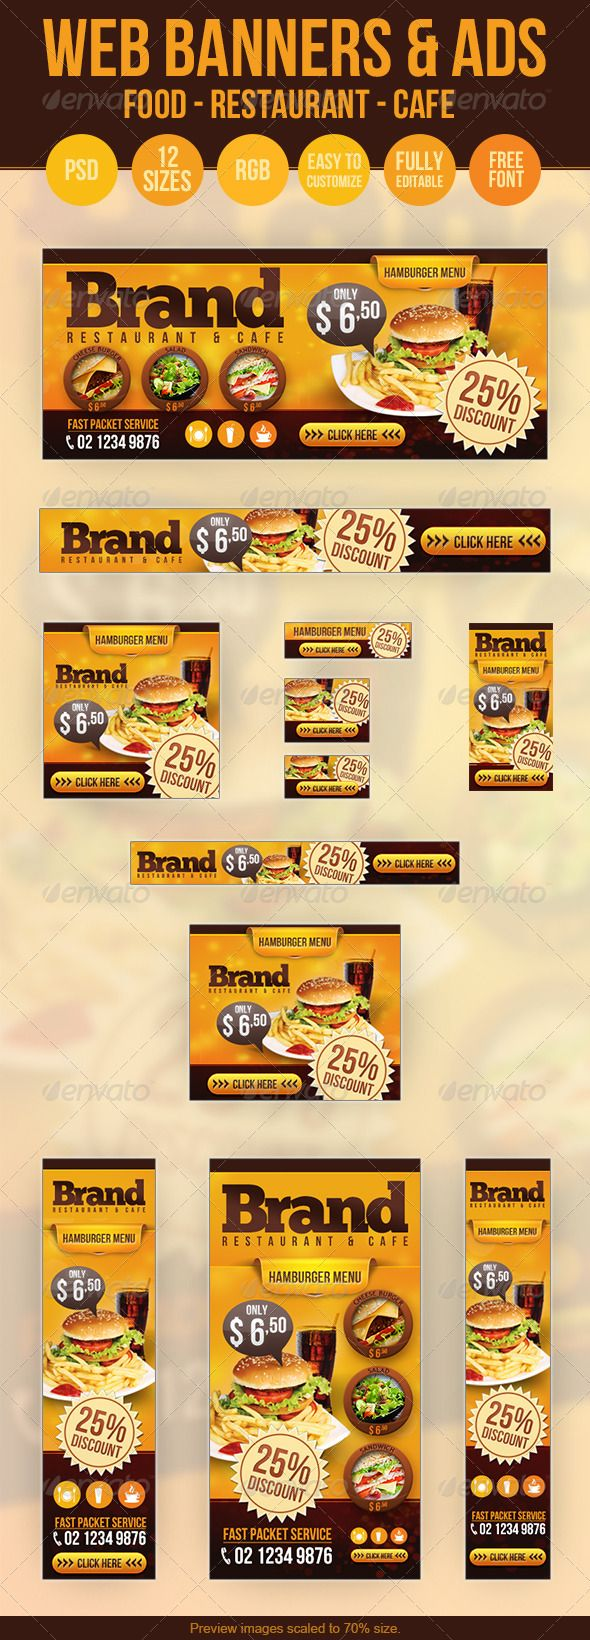 Food Web Banners & Advertise Template PSD | Buy and Download: http://graphicriver.net/item/food-web-banners-advertise-psd-templates/3320857?WT.ac=category_thumb&WT.z_author=hsynkyc&ref=ksioks